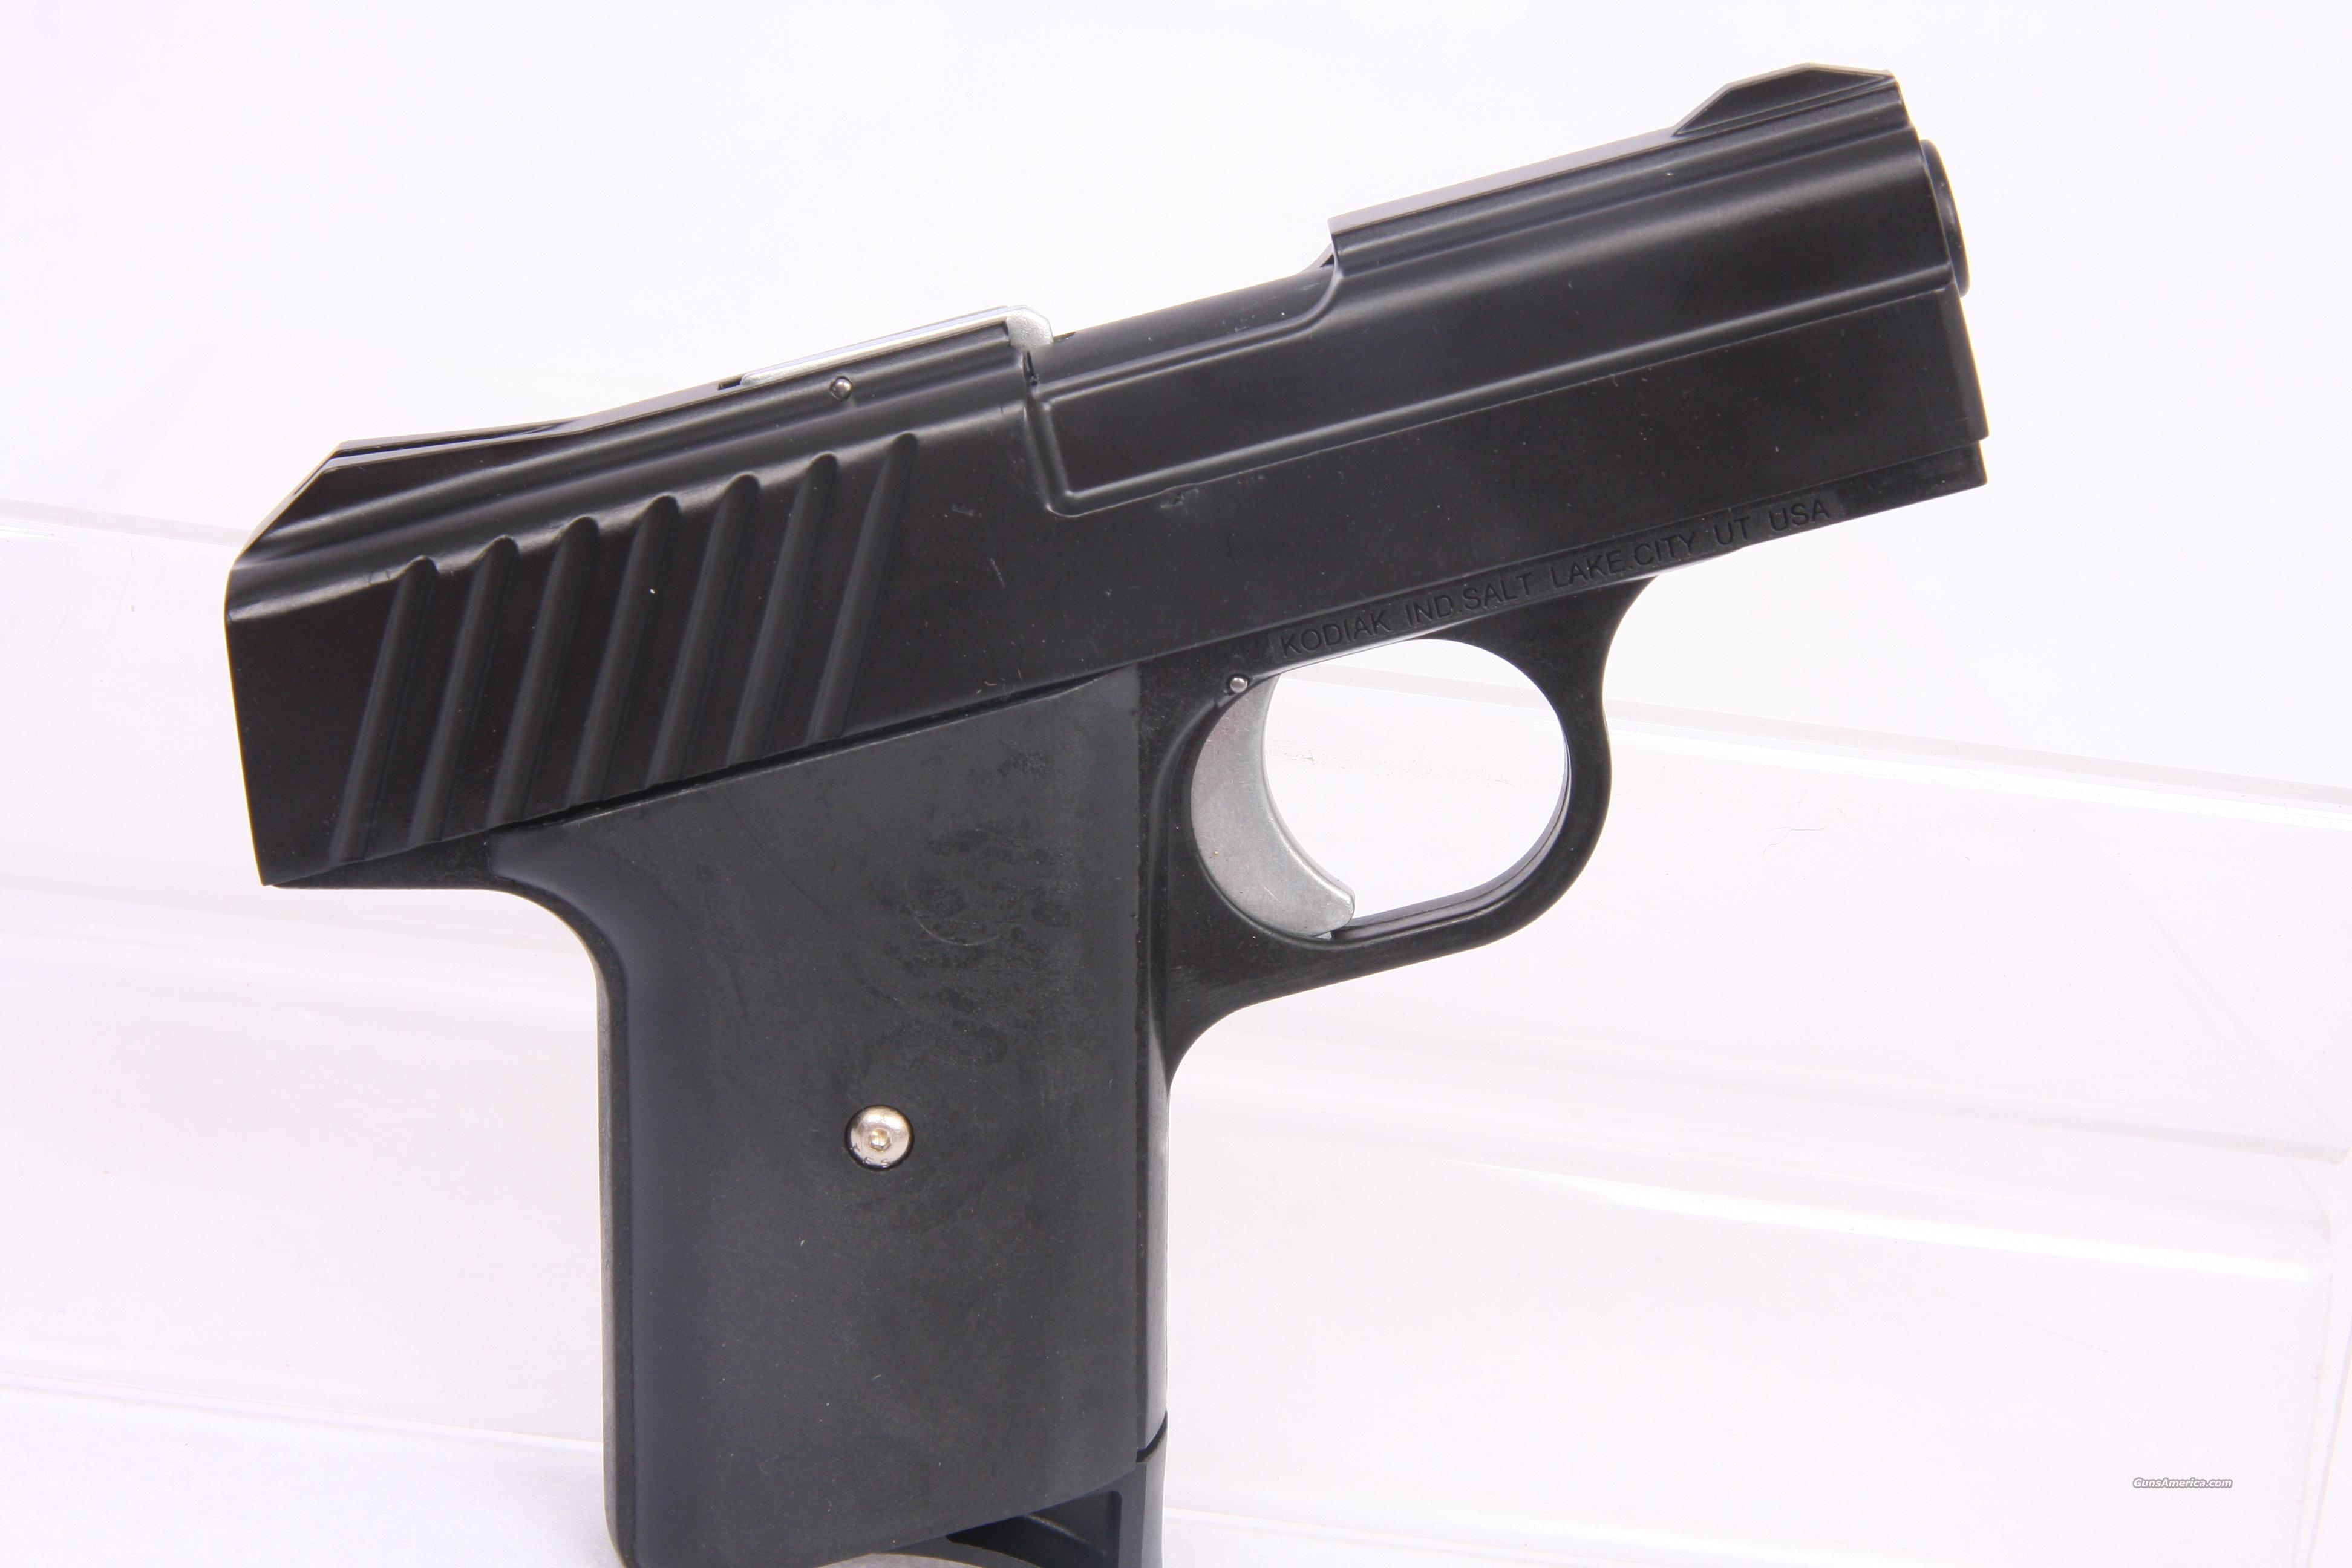 Cobra Denali .380 ACP Black  Guns > Pistols > Cobra Derringers